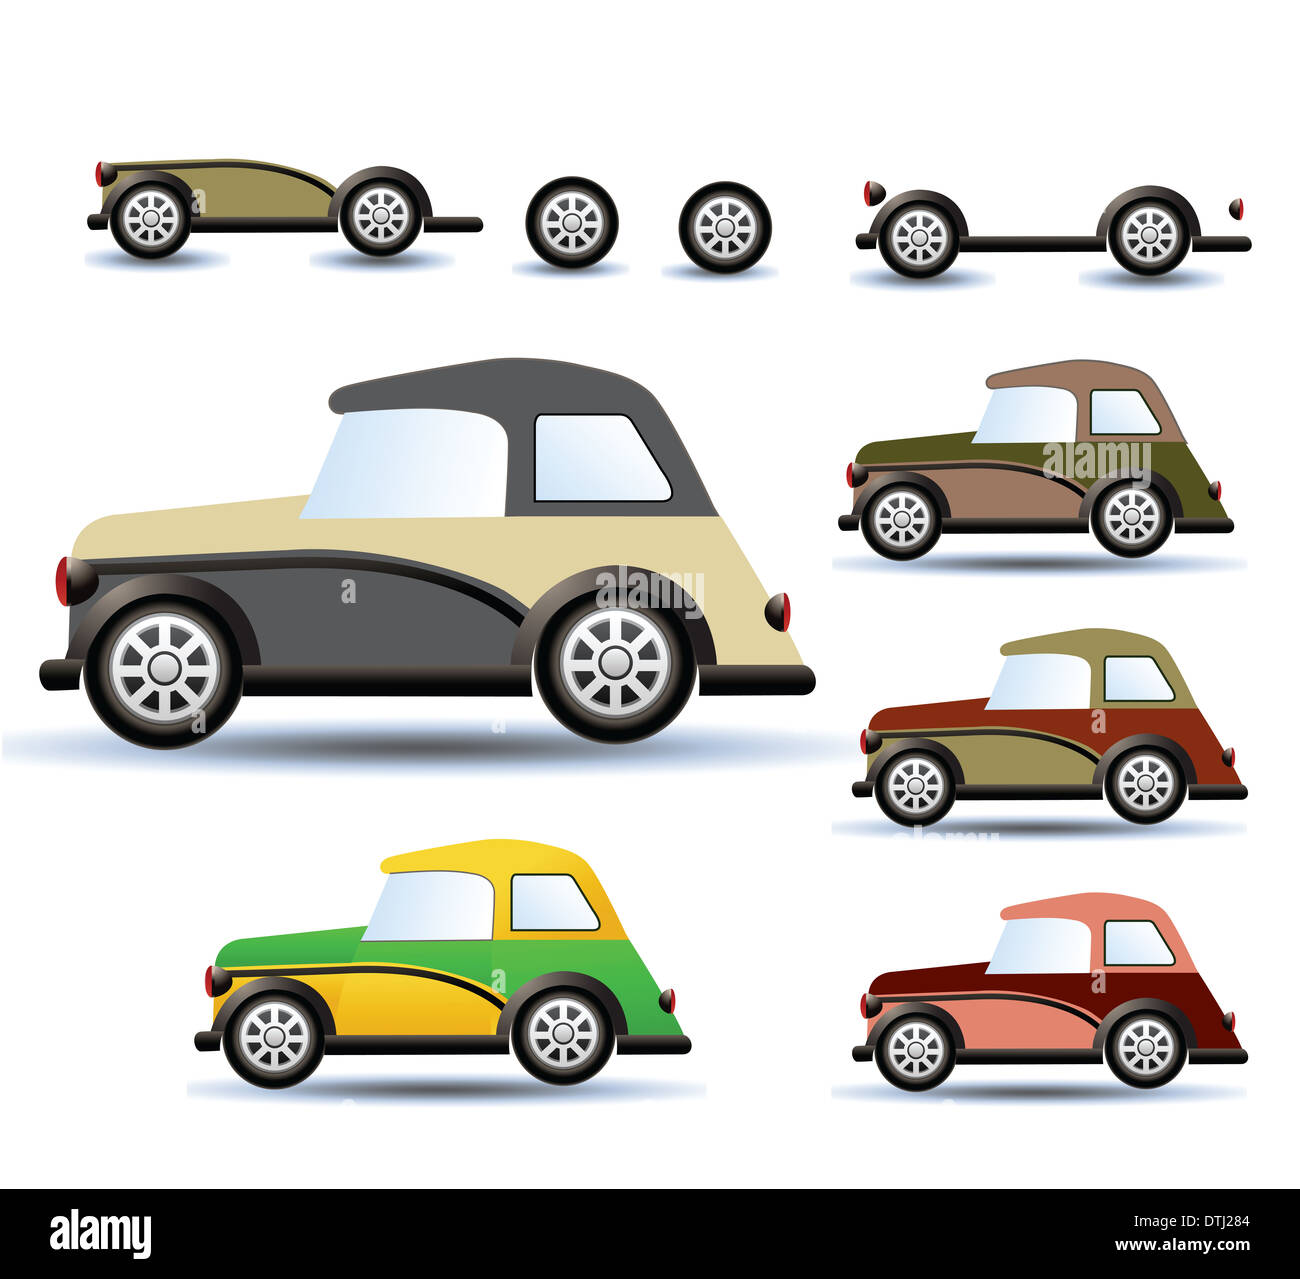 Various variants of a car on a white background Stock Photo